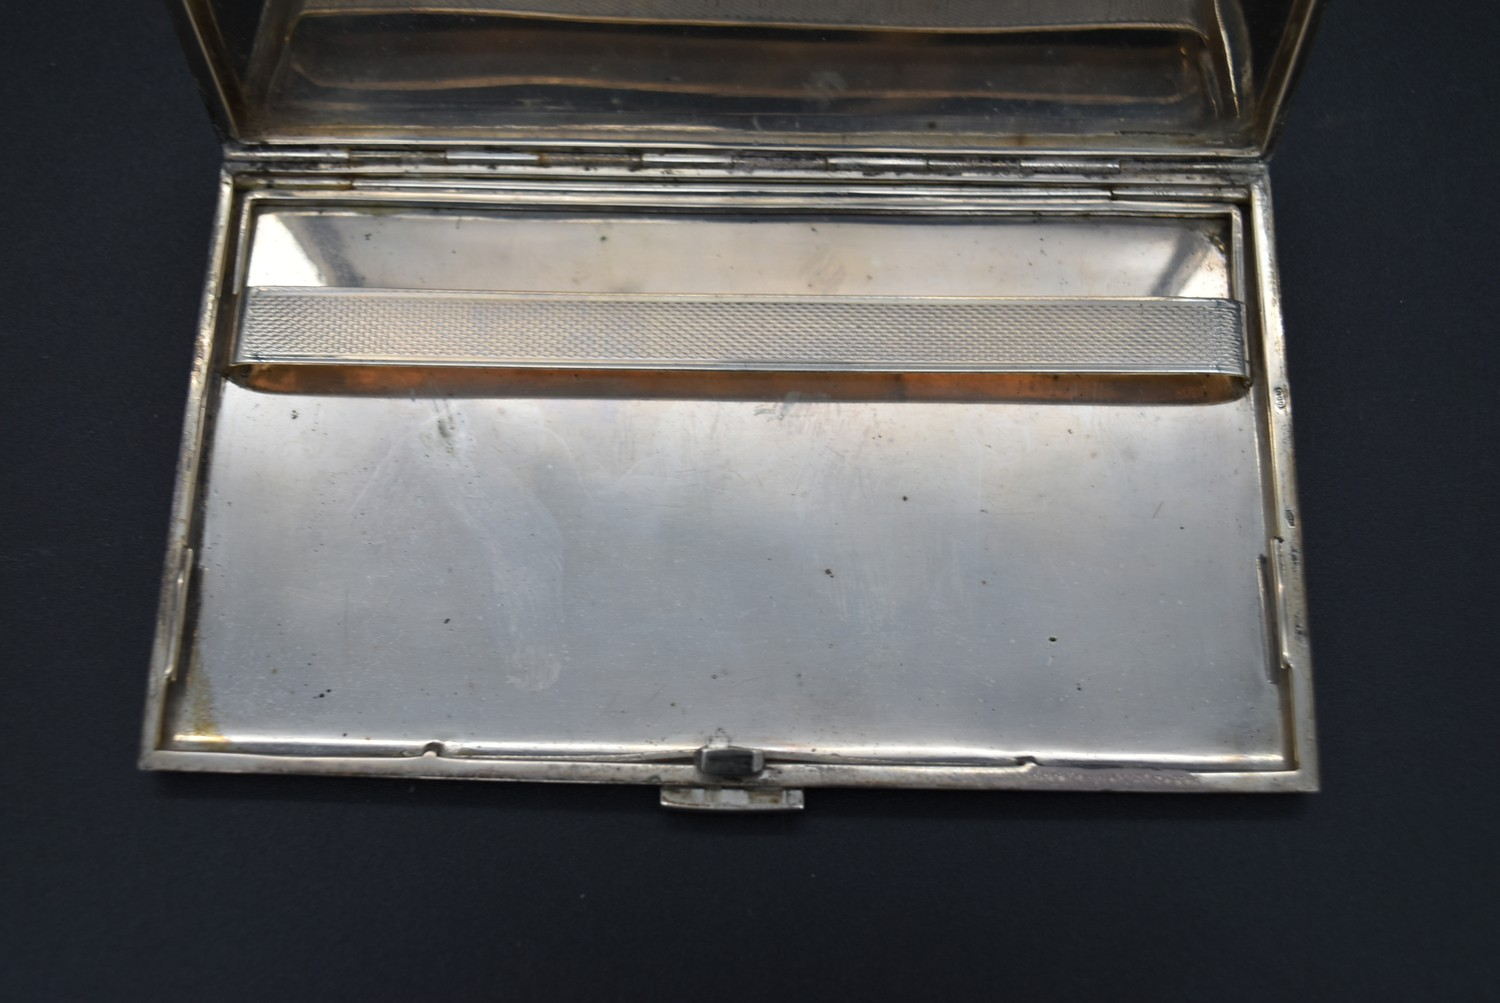 A Continental silver cigarette case with maker's stamp, marked 800, L.13.5 W.8.5cm, weight 166g - Image 4 of 5